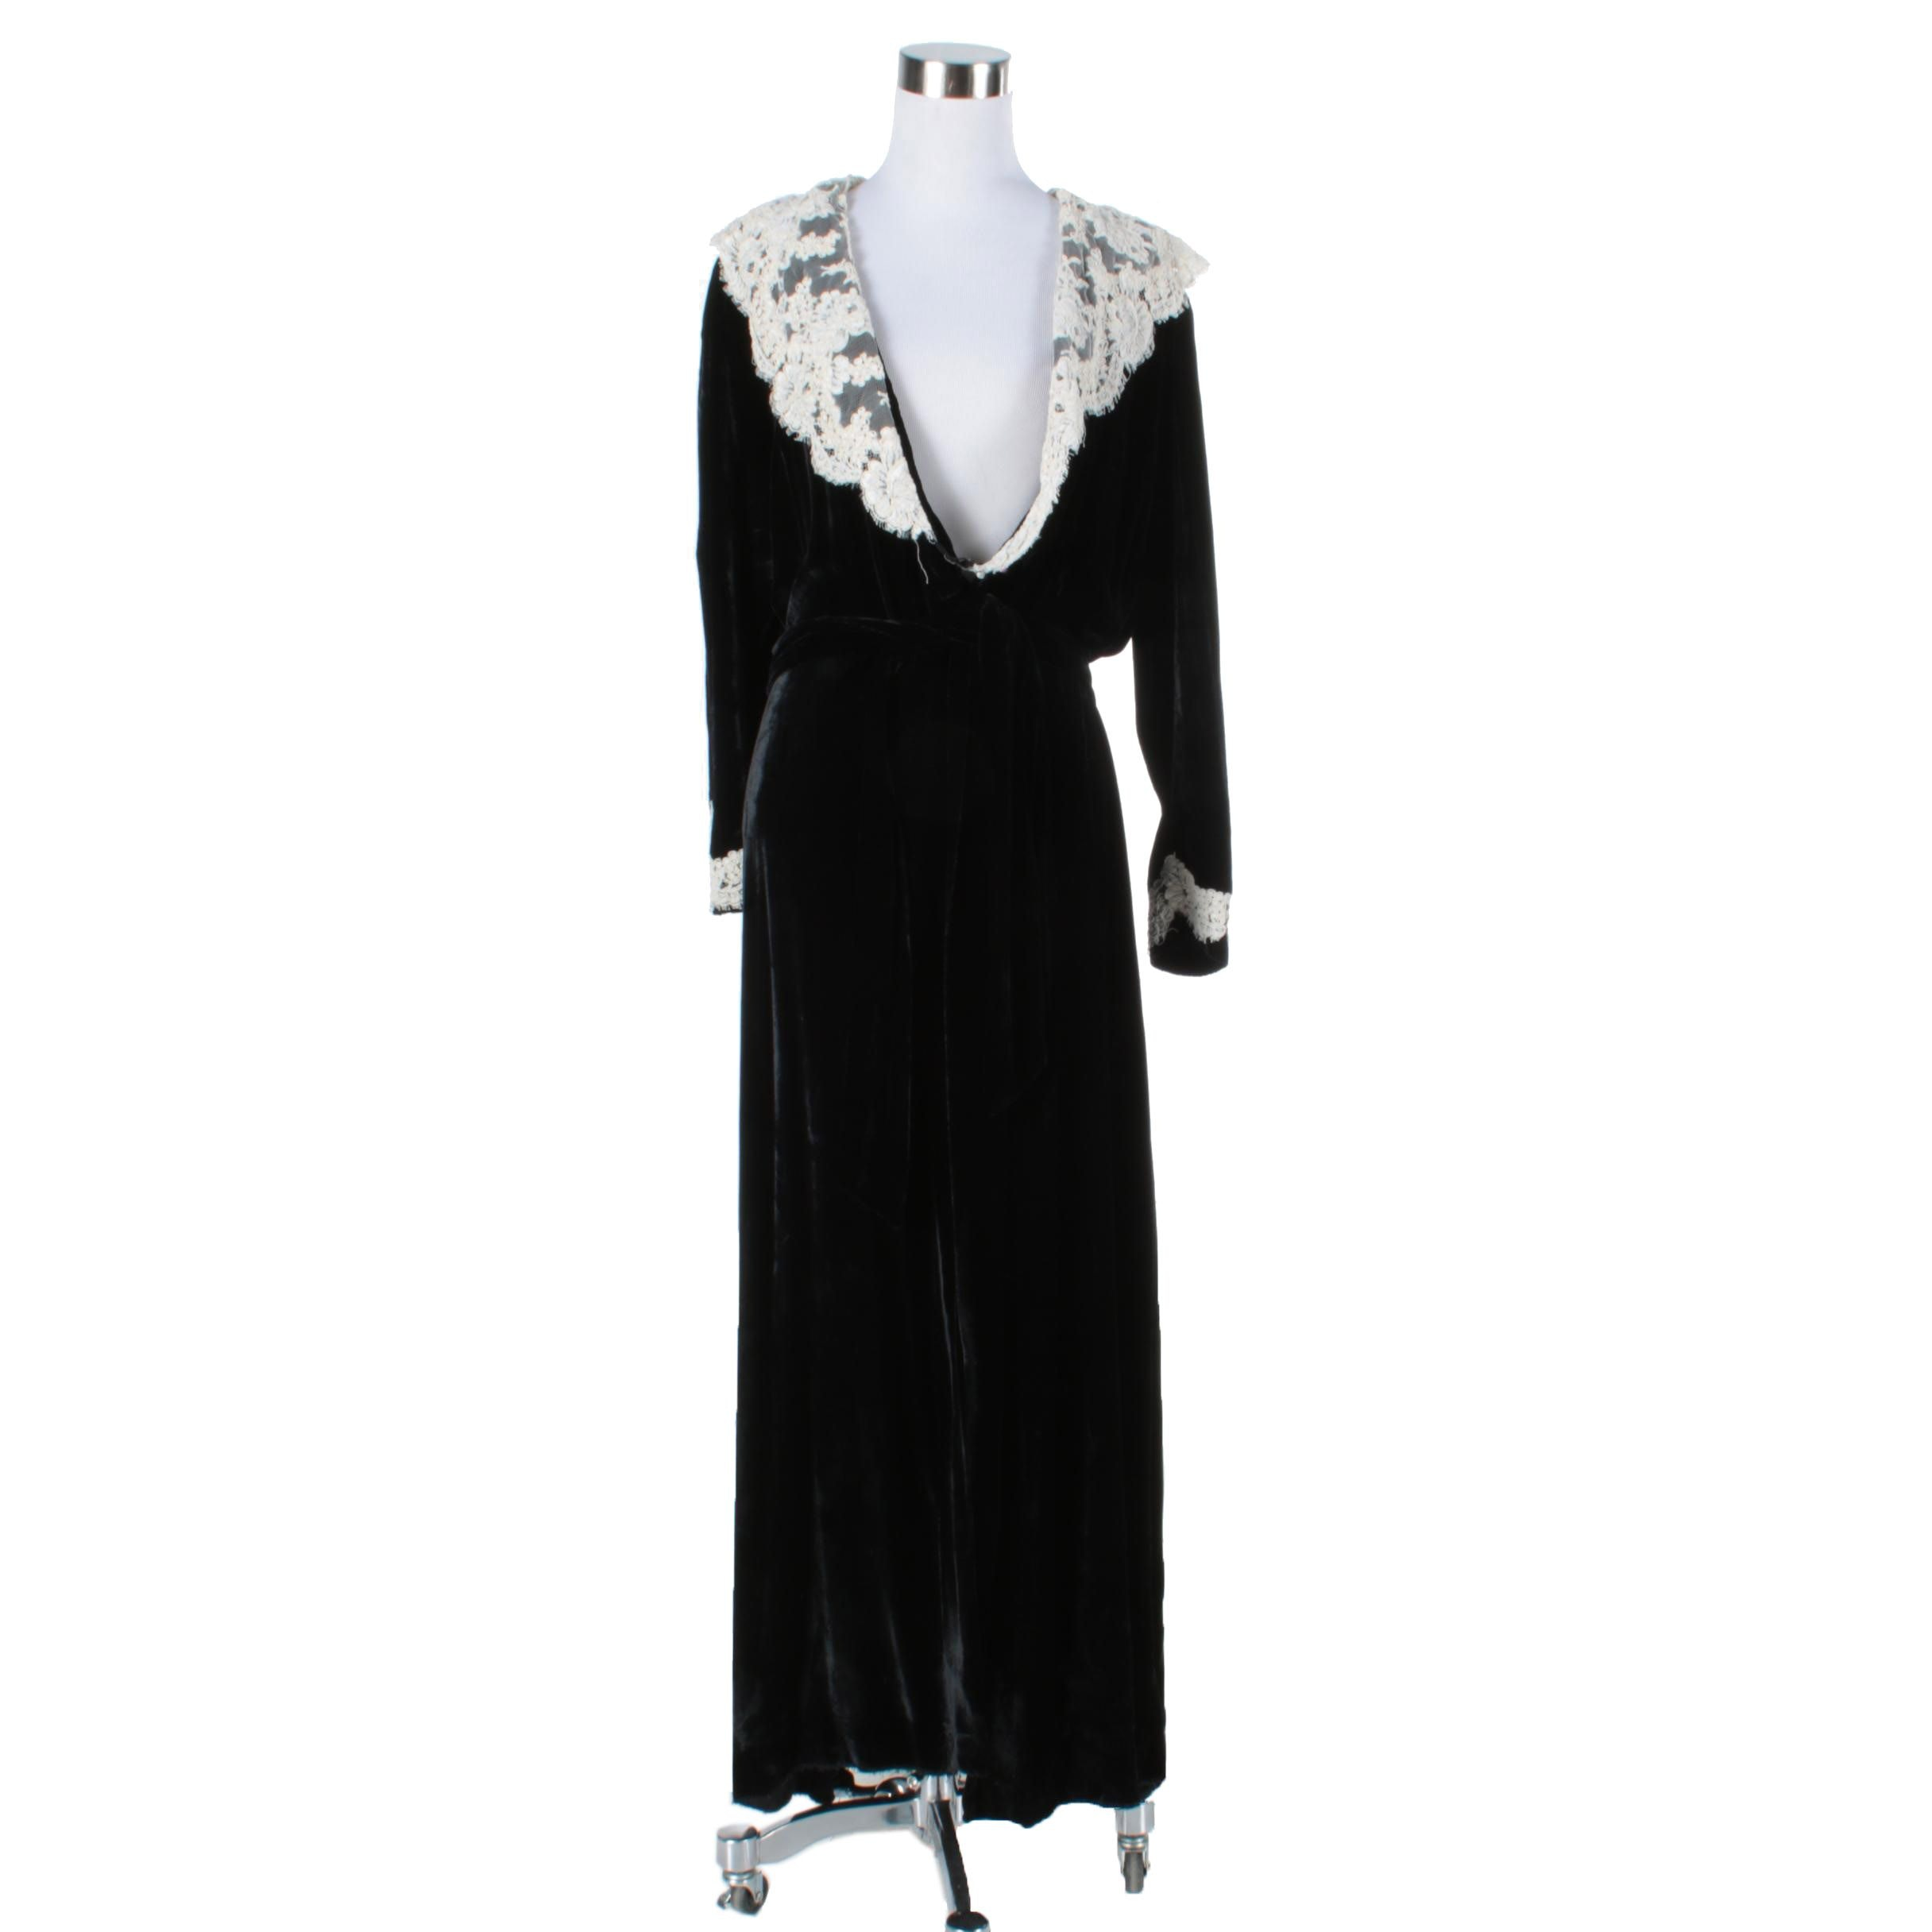 Women's Vintage Christian Dior La Connaisseur Black Velvet Dress with Lace